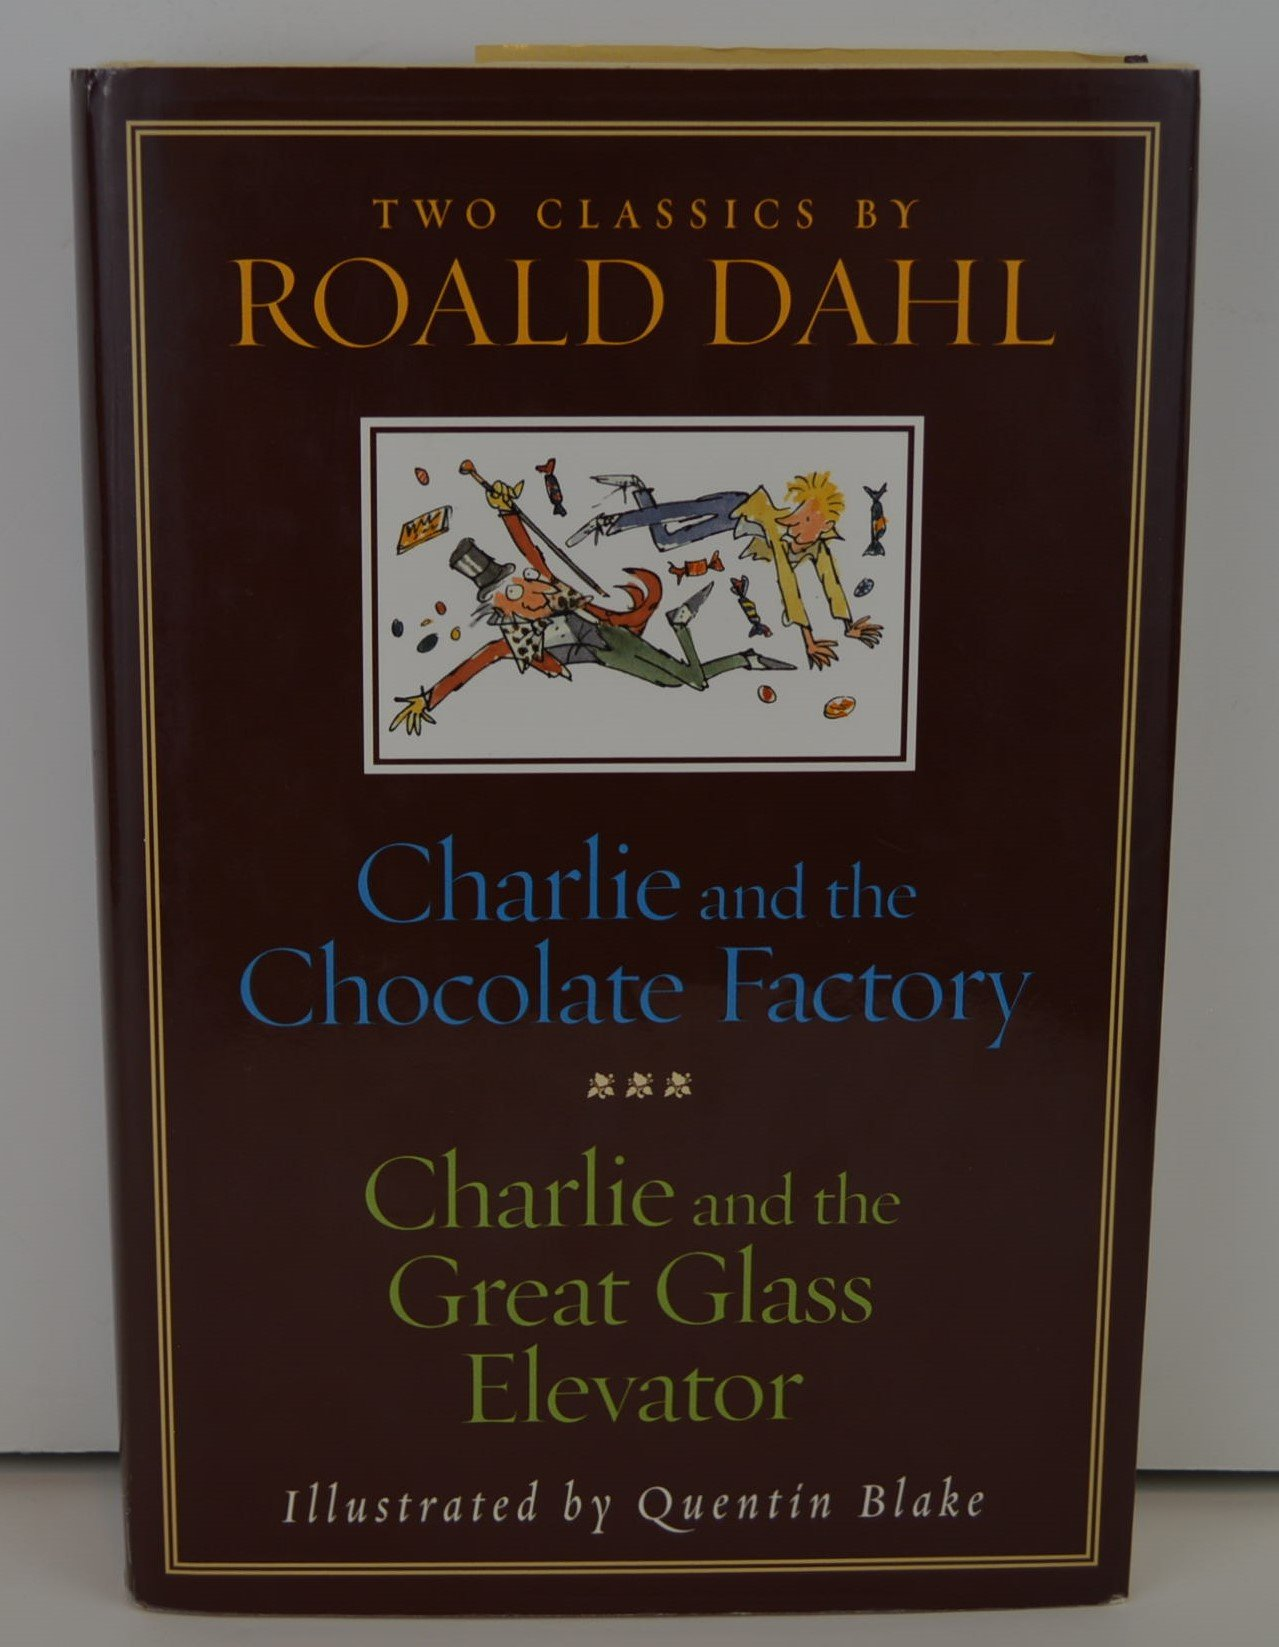 charlie and the chocolate factory and charlie and the great glass charlie and the chocolate factory and charlie and the great glass elevator roald dahl quentin blake 9780375829307 com books